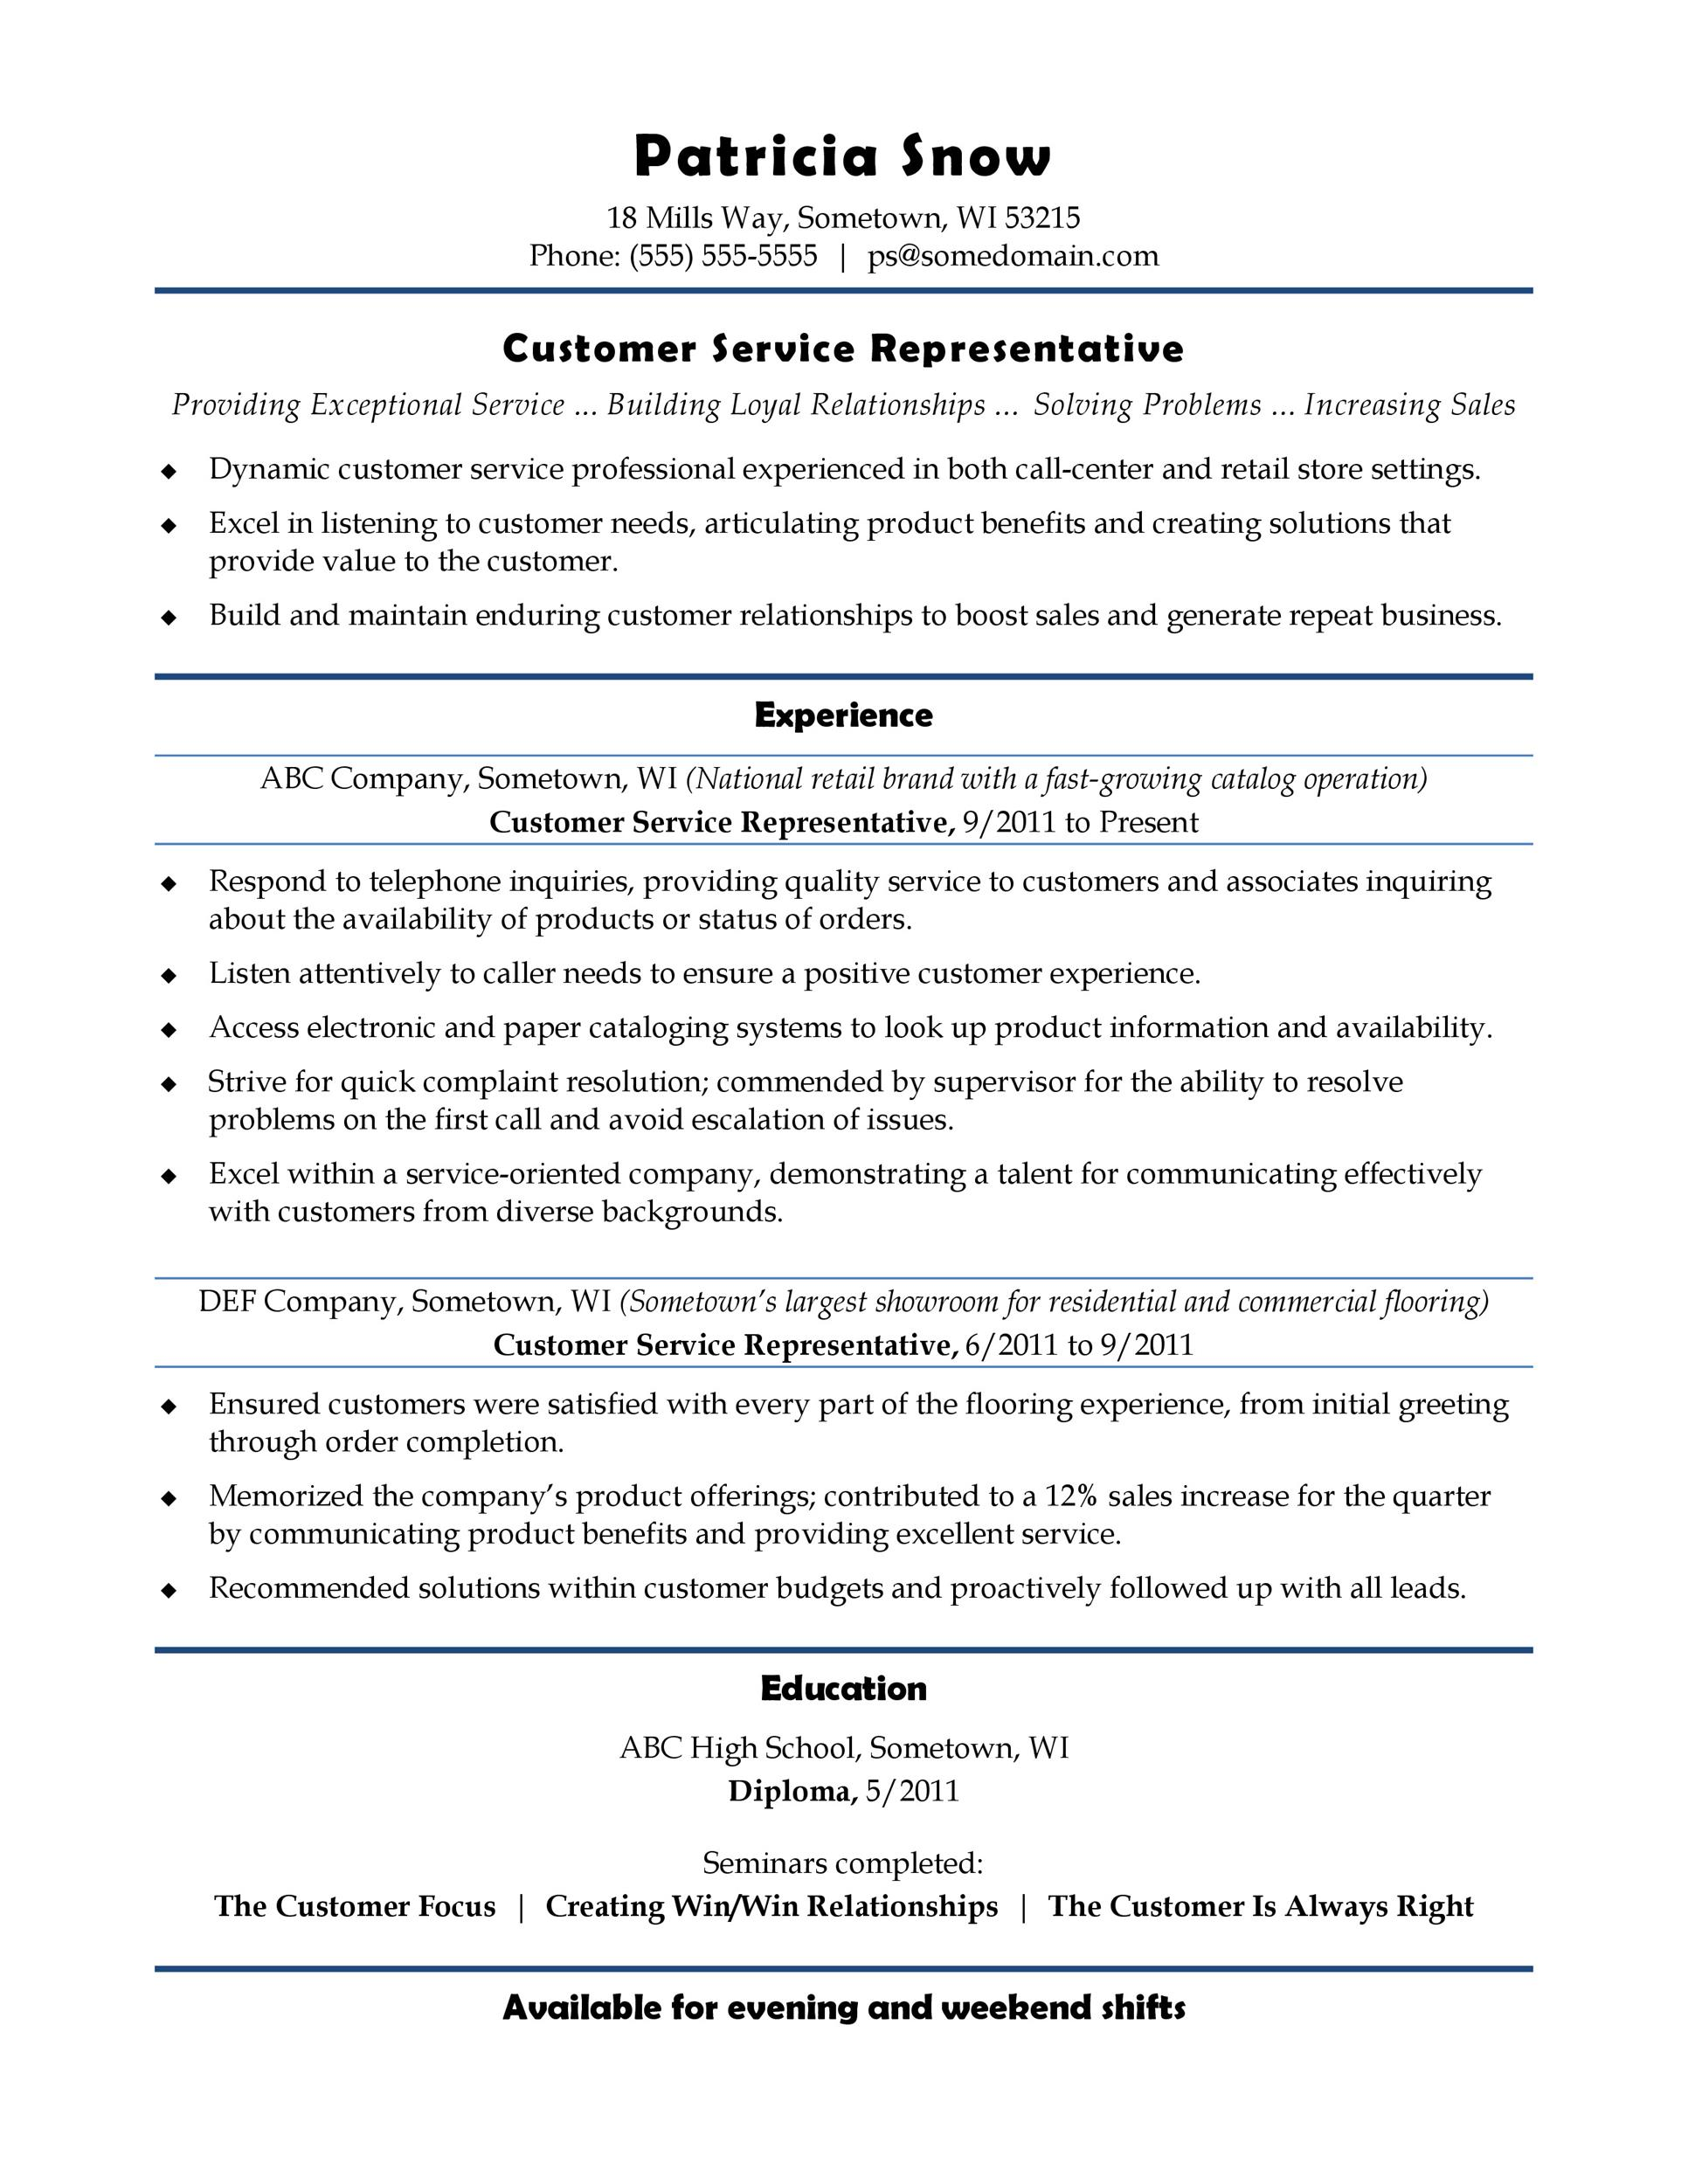 free customer service resume template 02 - Customer Service Resume